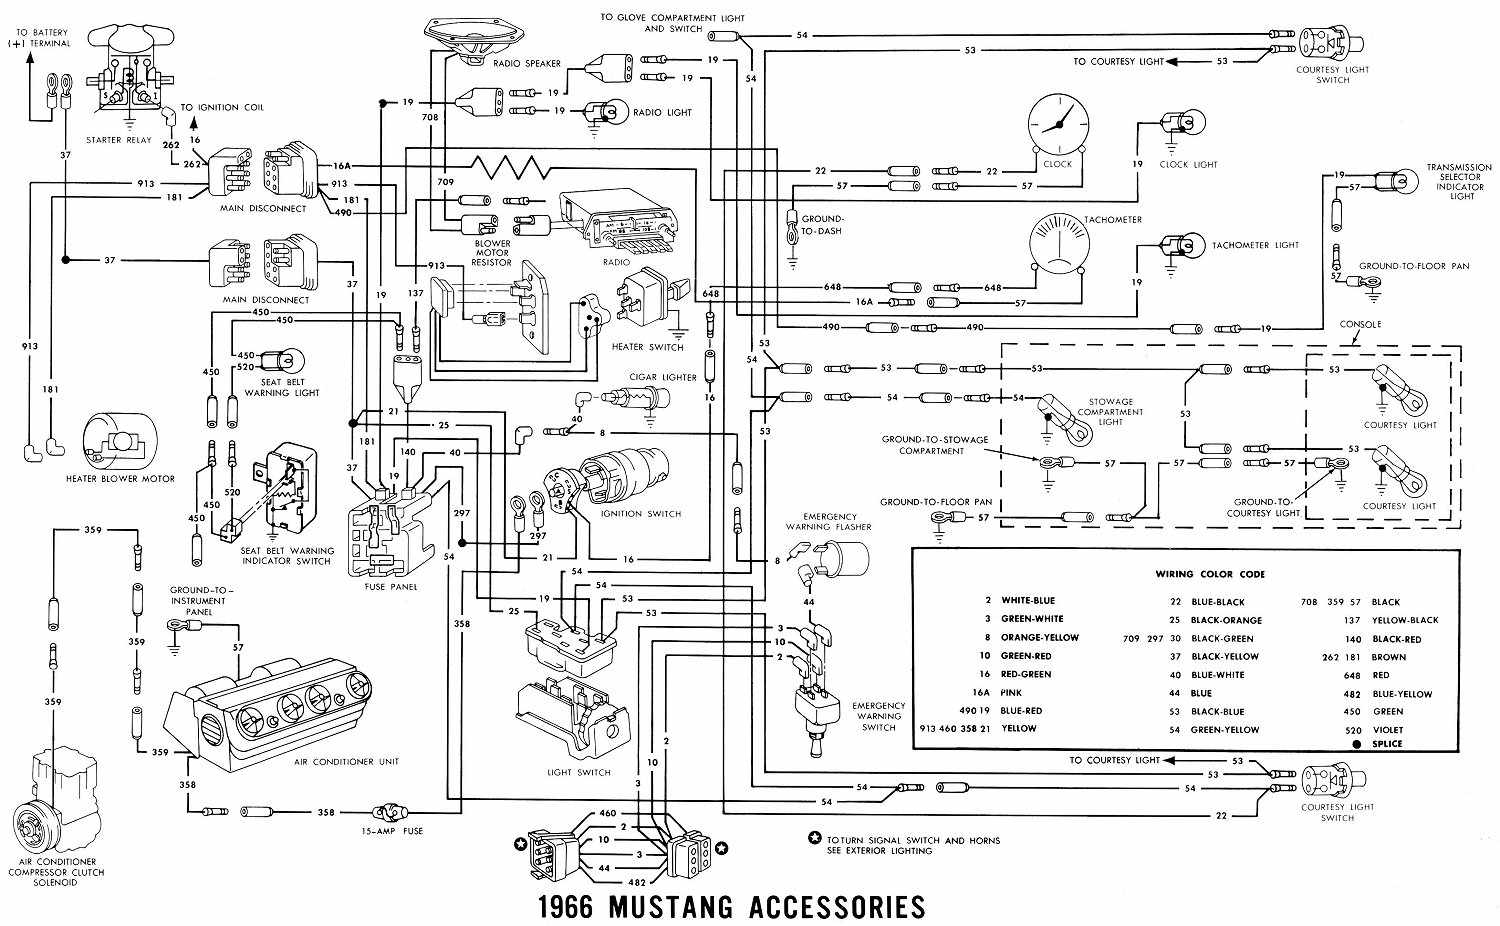 Accessories Wiring Diagram Simple Wiring Diagram 2011 Mustang Headlight  Switch Wiring Diagram 2011 Mustang Wiring Diagram